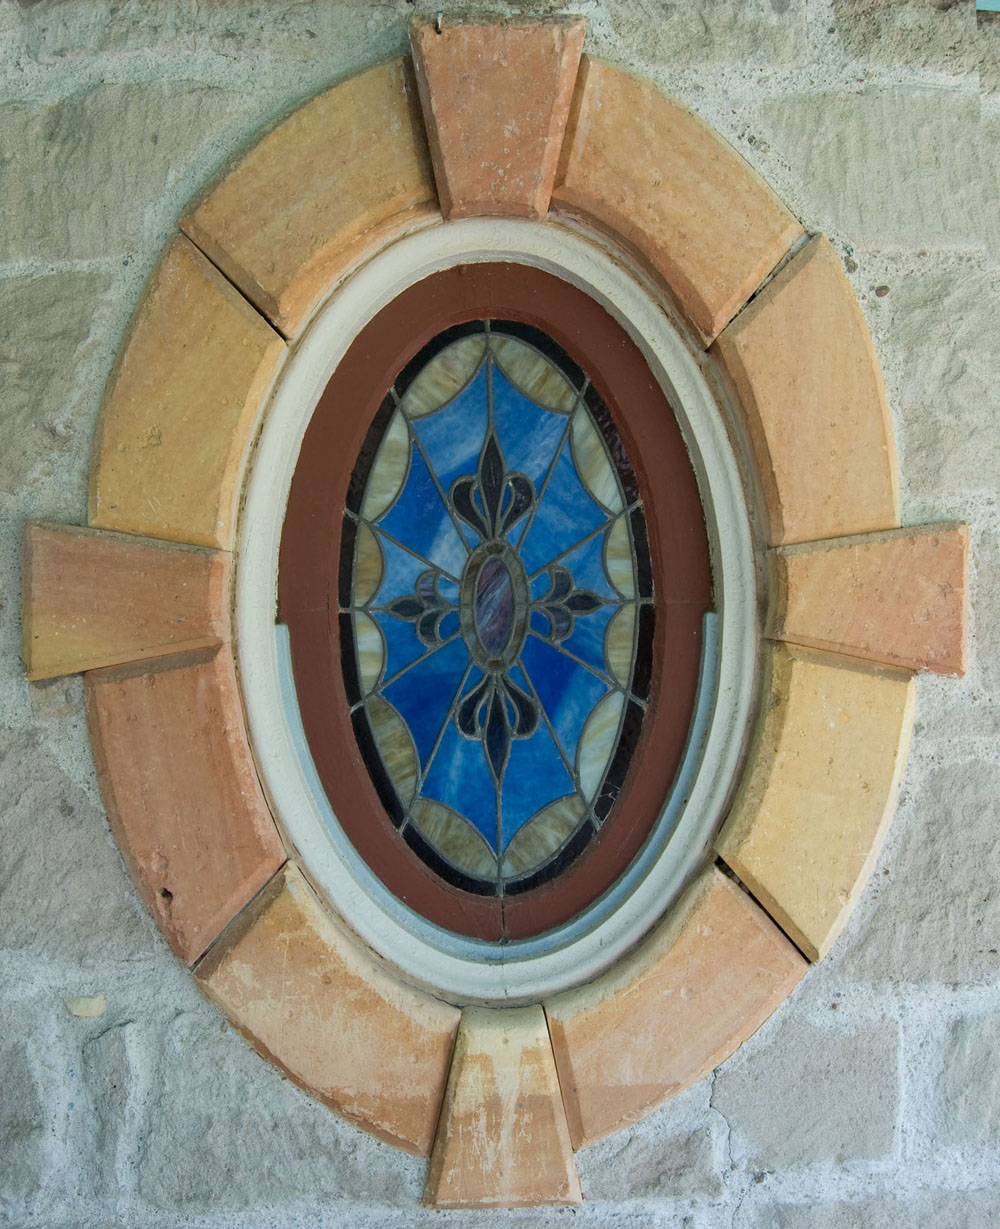 Exterior view of stained glass window in guest bedroom, Cottonwood Ranch State Historic Site